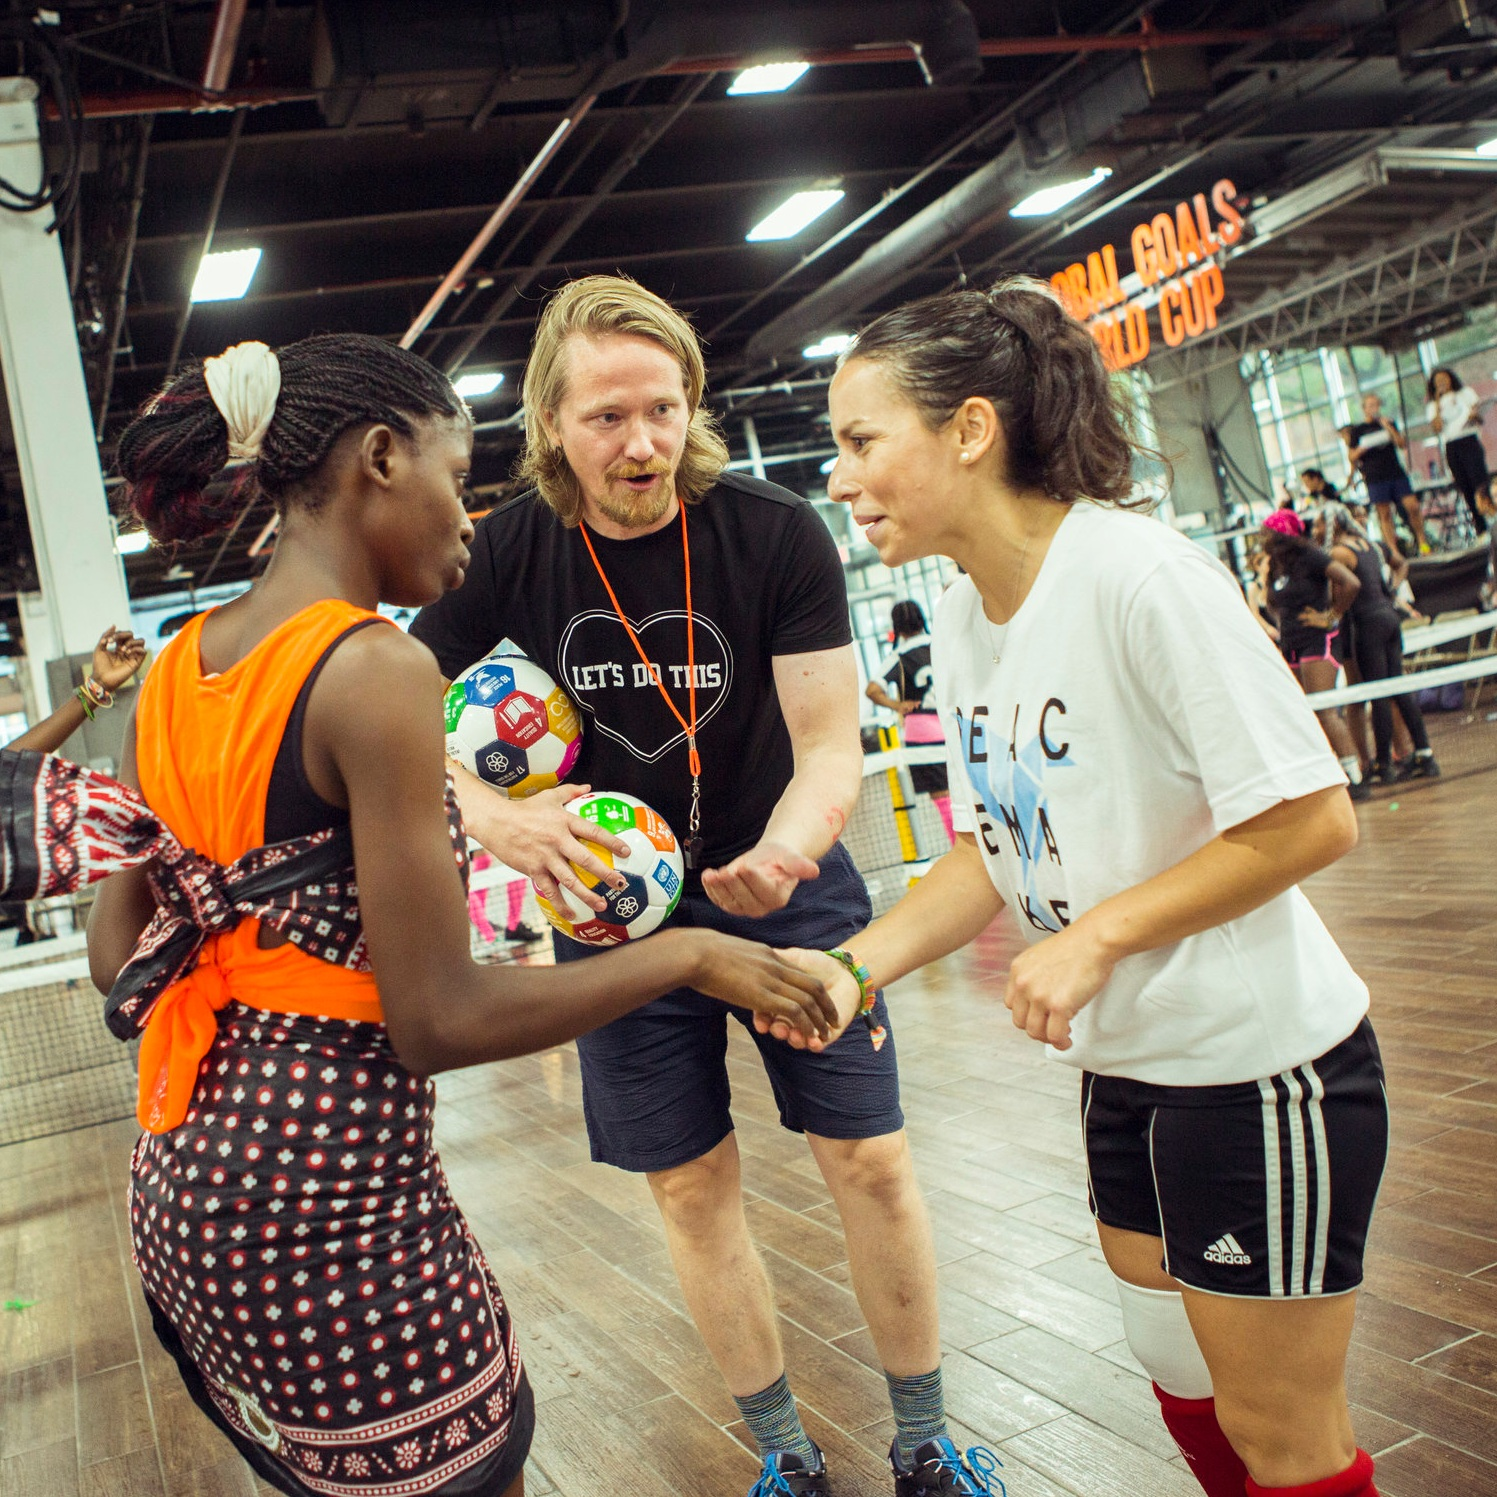 2017 GGWCup New York City - The Second Global Goals World Cup in NYC was played at the Brooklyn Expo Center with 24 teams!Opening speech by HRH Crown Princess Mary of Denmark, New Sonsors GANNI, Shamballa, Joe and the Juice, Cadilac & Muuto. Partnership with Global Citizen, UN Women and Women Deliver. Annie Lennox nominates a player for the SDG 5 Dream Team. Moving the Goalposts bring the trophy home to Kenya.